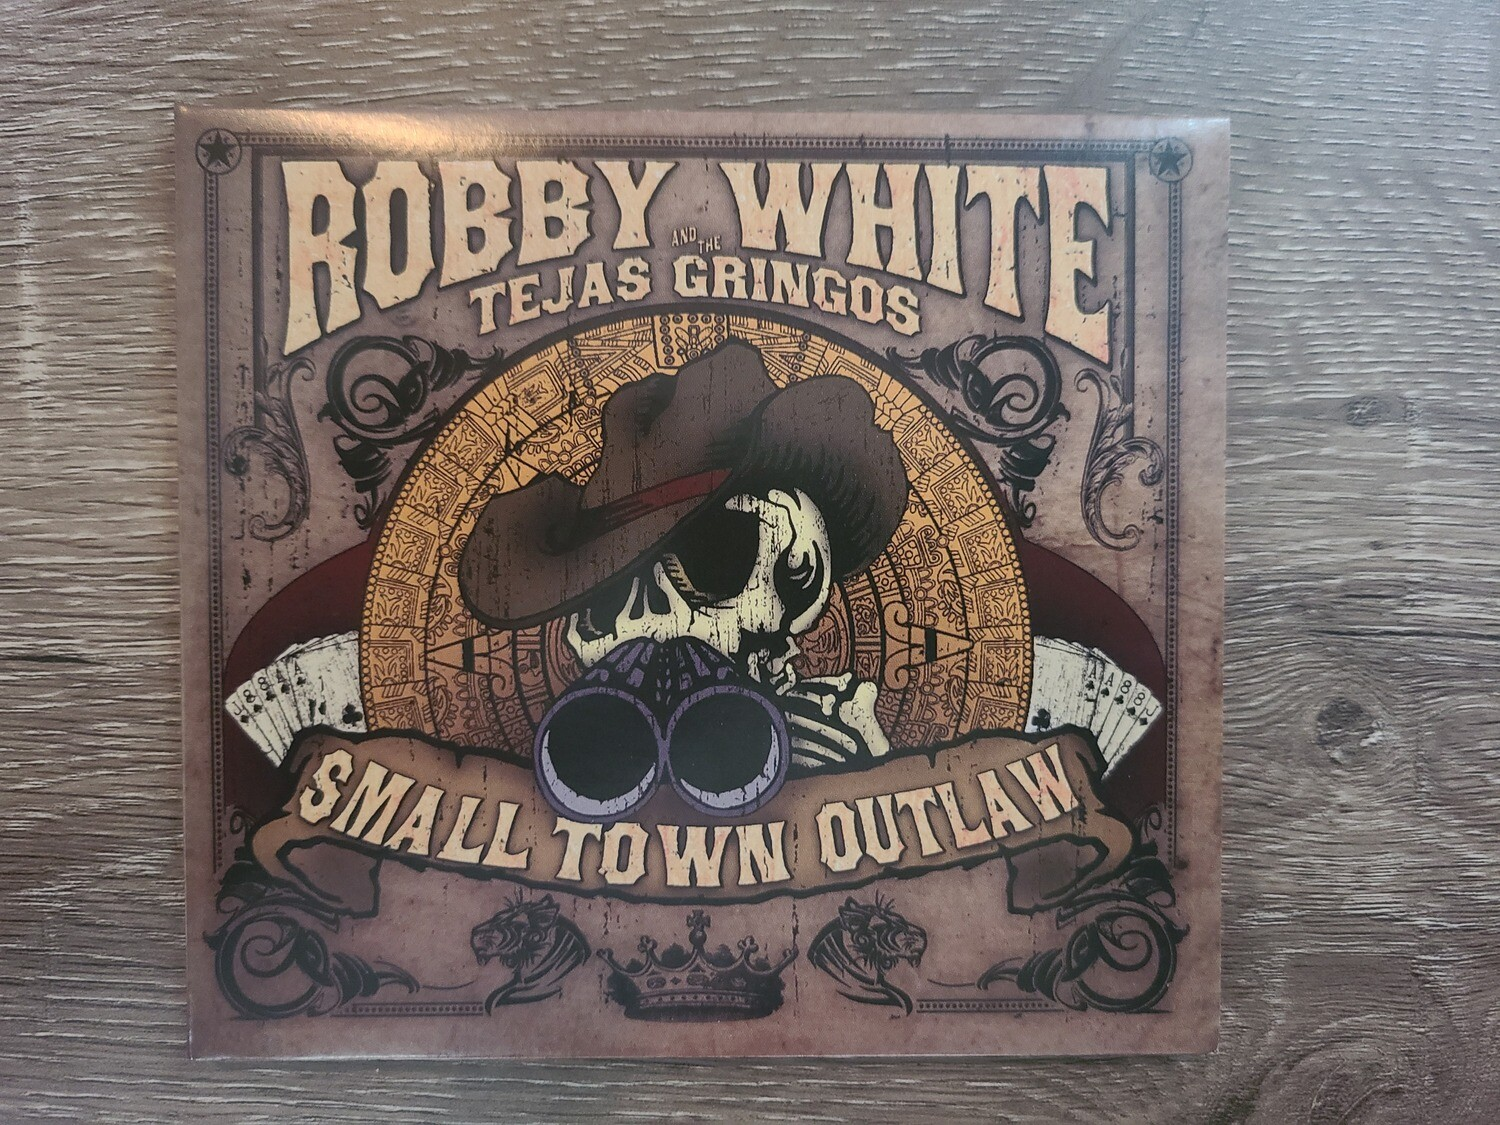 Small Town Outlaw CD